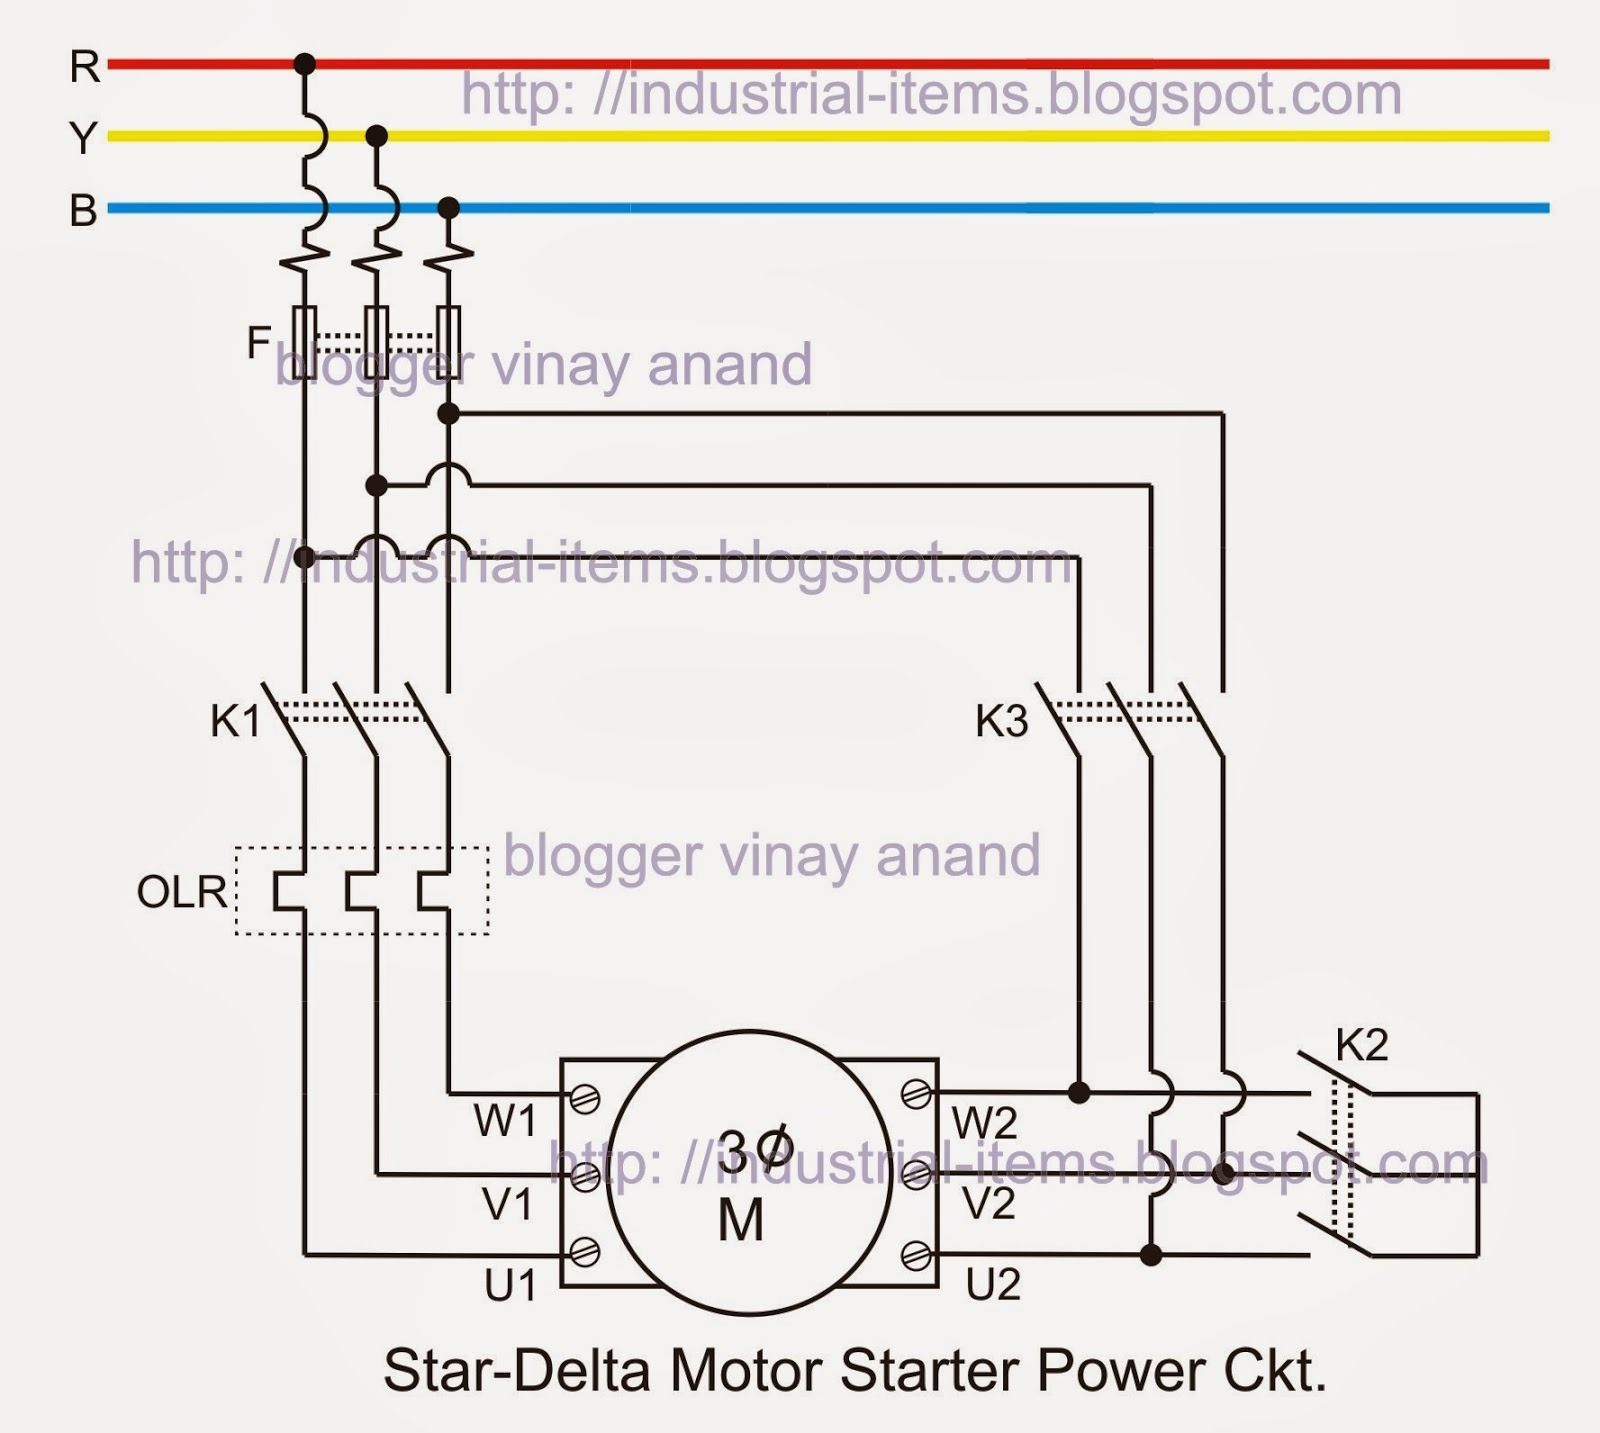 Reduced Voltage Starter Wiring Diagram | WiringDiagram.org Delta Connection,  Starter Motor, Circuit